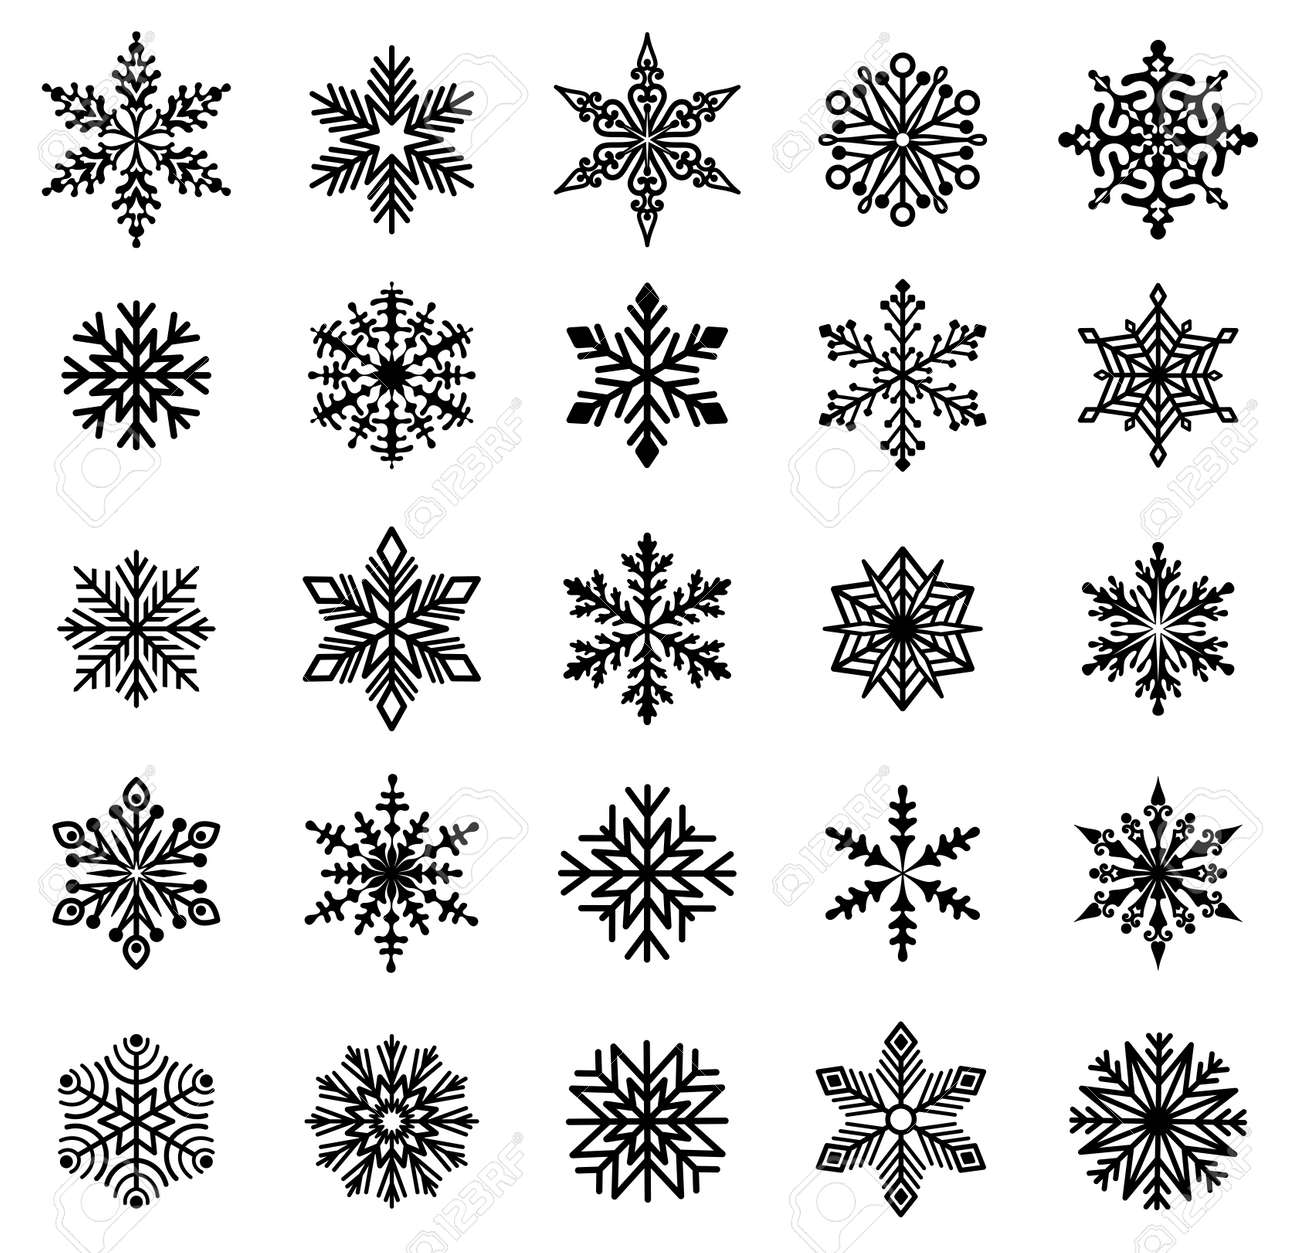 Snowflakes. Set of varied snowflakes. Design element for Christmas, New Years and Winter Holidays. Black silhouette. Isolated. Vector - 153977753